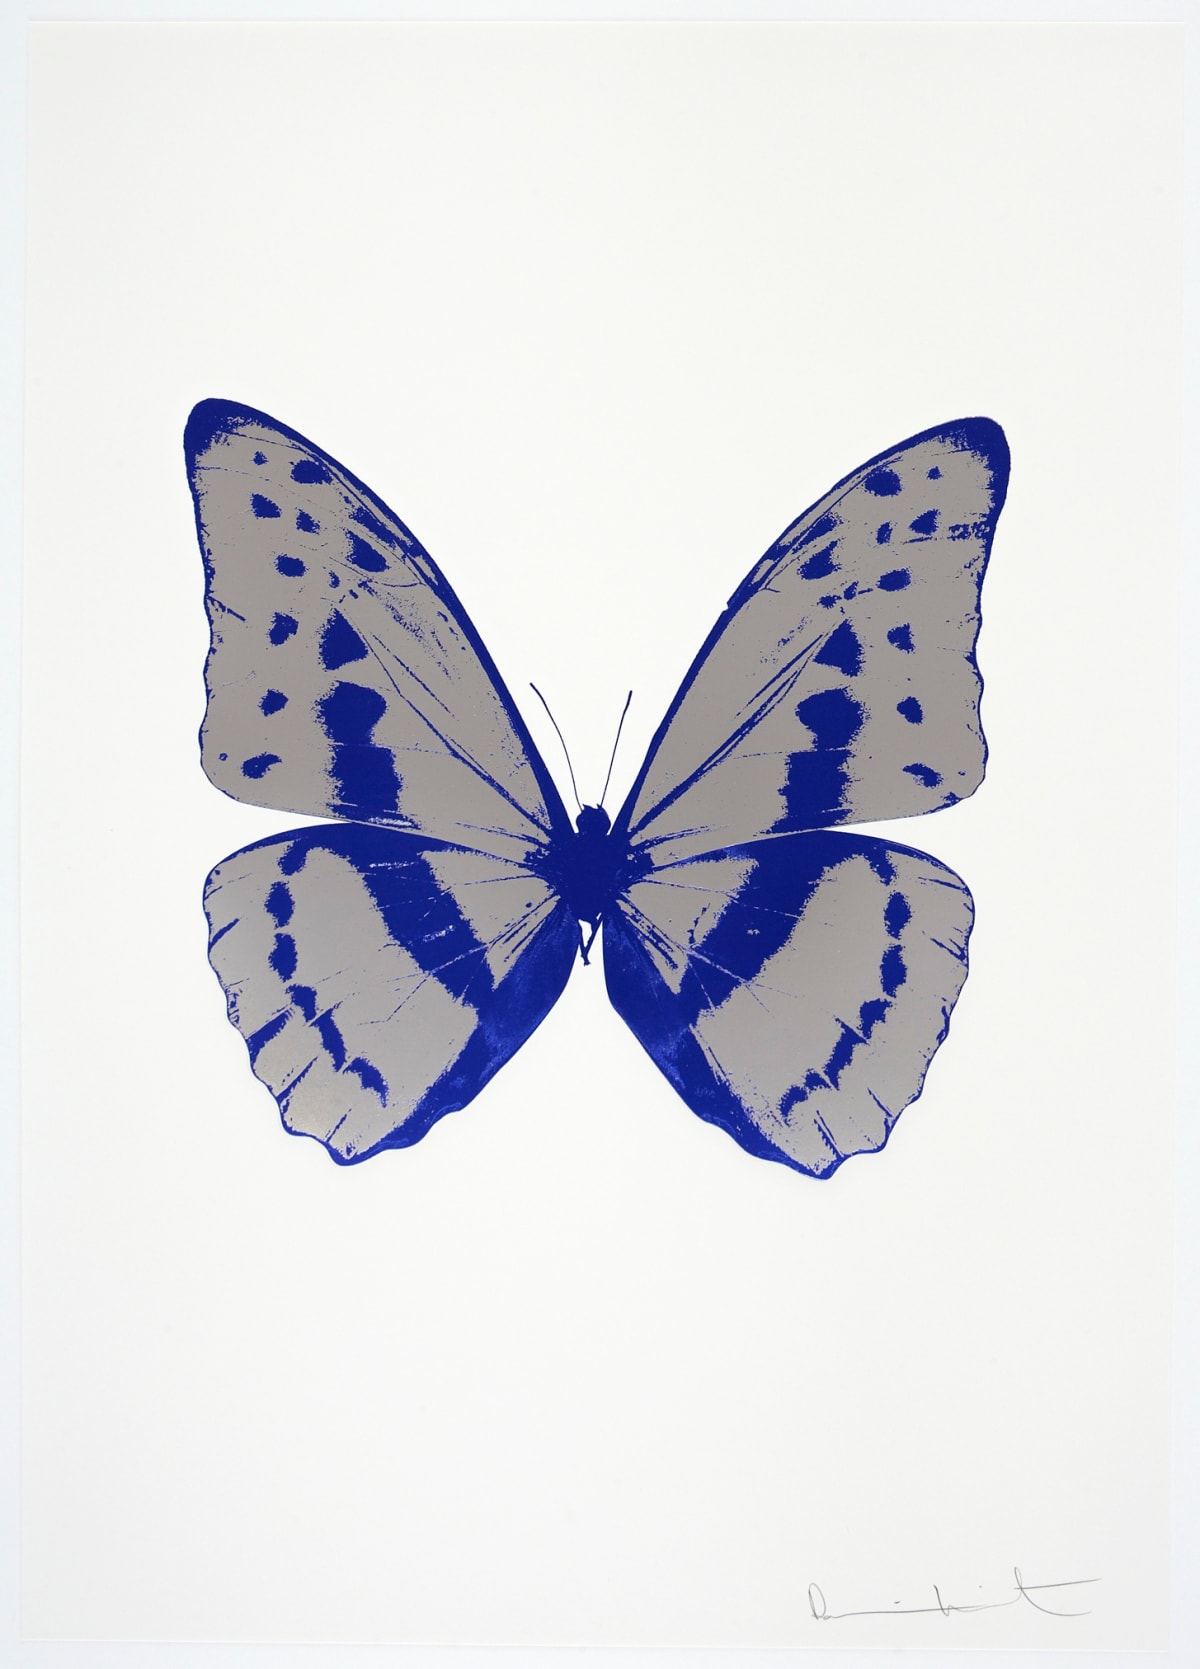 Damien Hirst The Souls III - Silver Gloss/Westminster Blue/Westminster Blue, 2010 3 colour foil block on 300gsm Arches 88 archival paper. Signed and numbered. Published by Paul Stolper and Other Criteria 72 x 51cm OC7975 / 660-78 Edition of 15